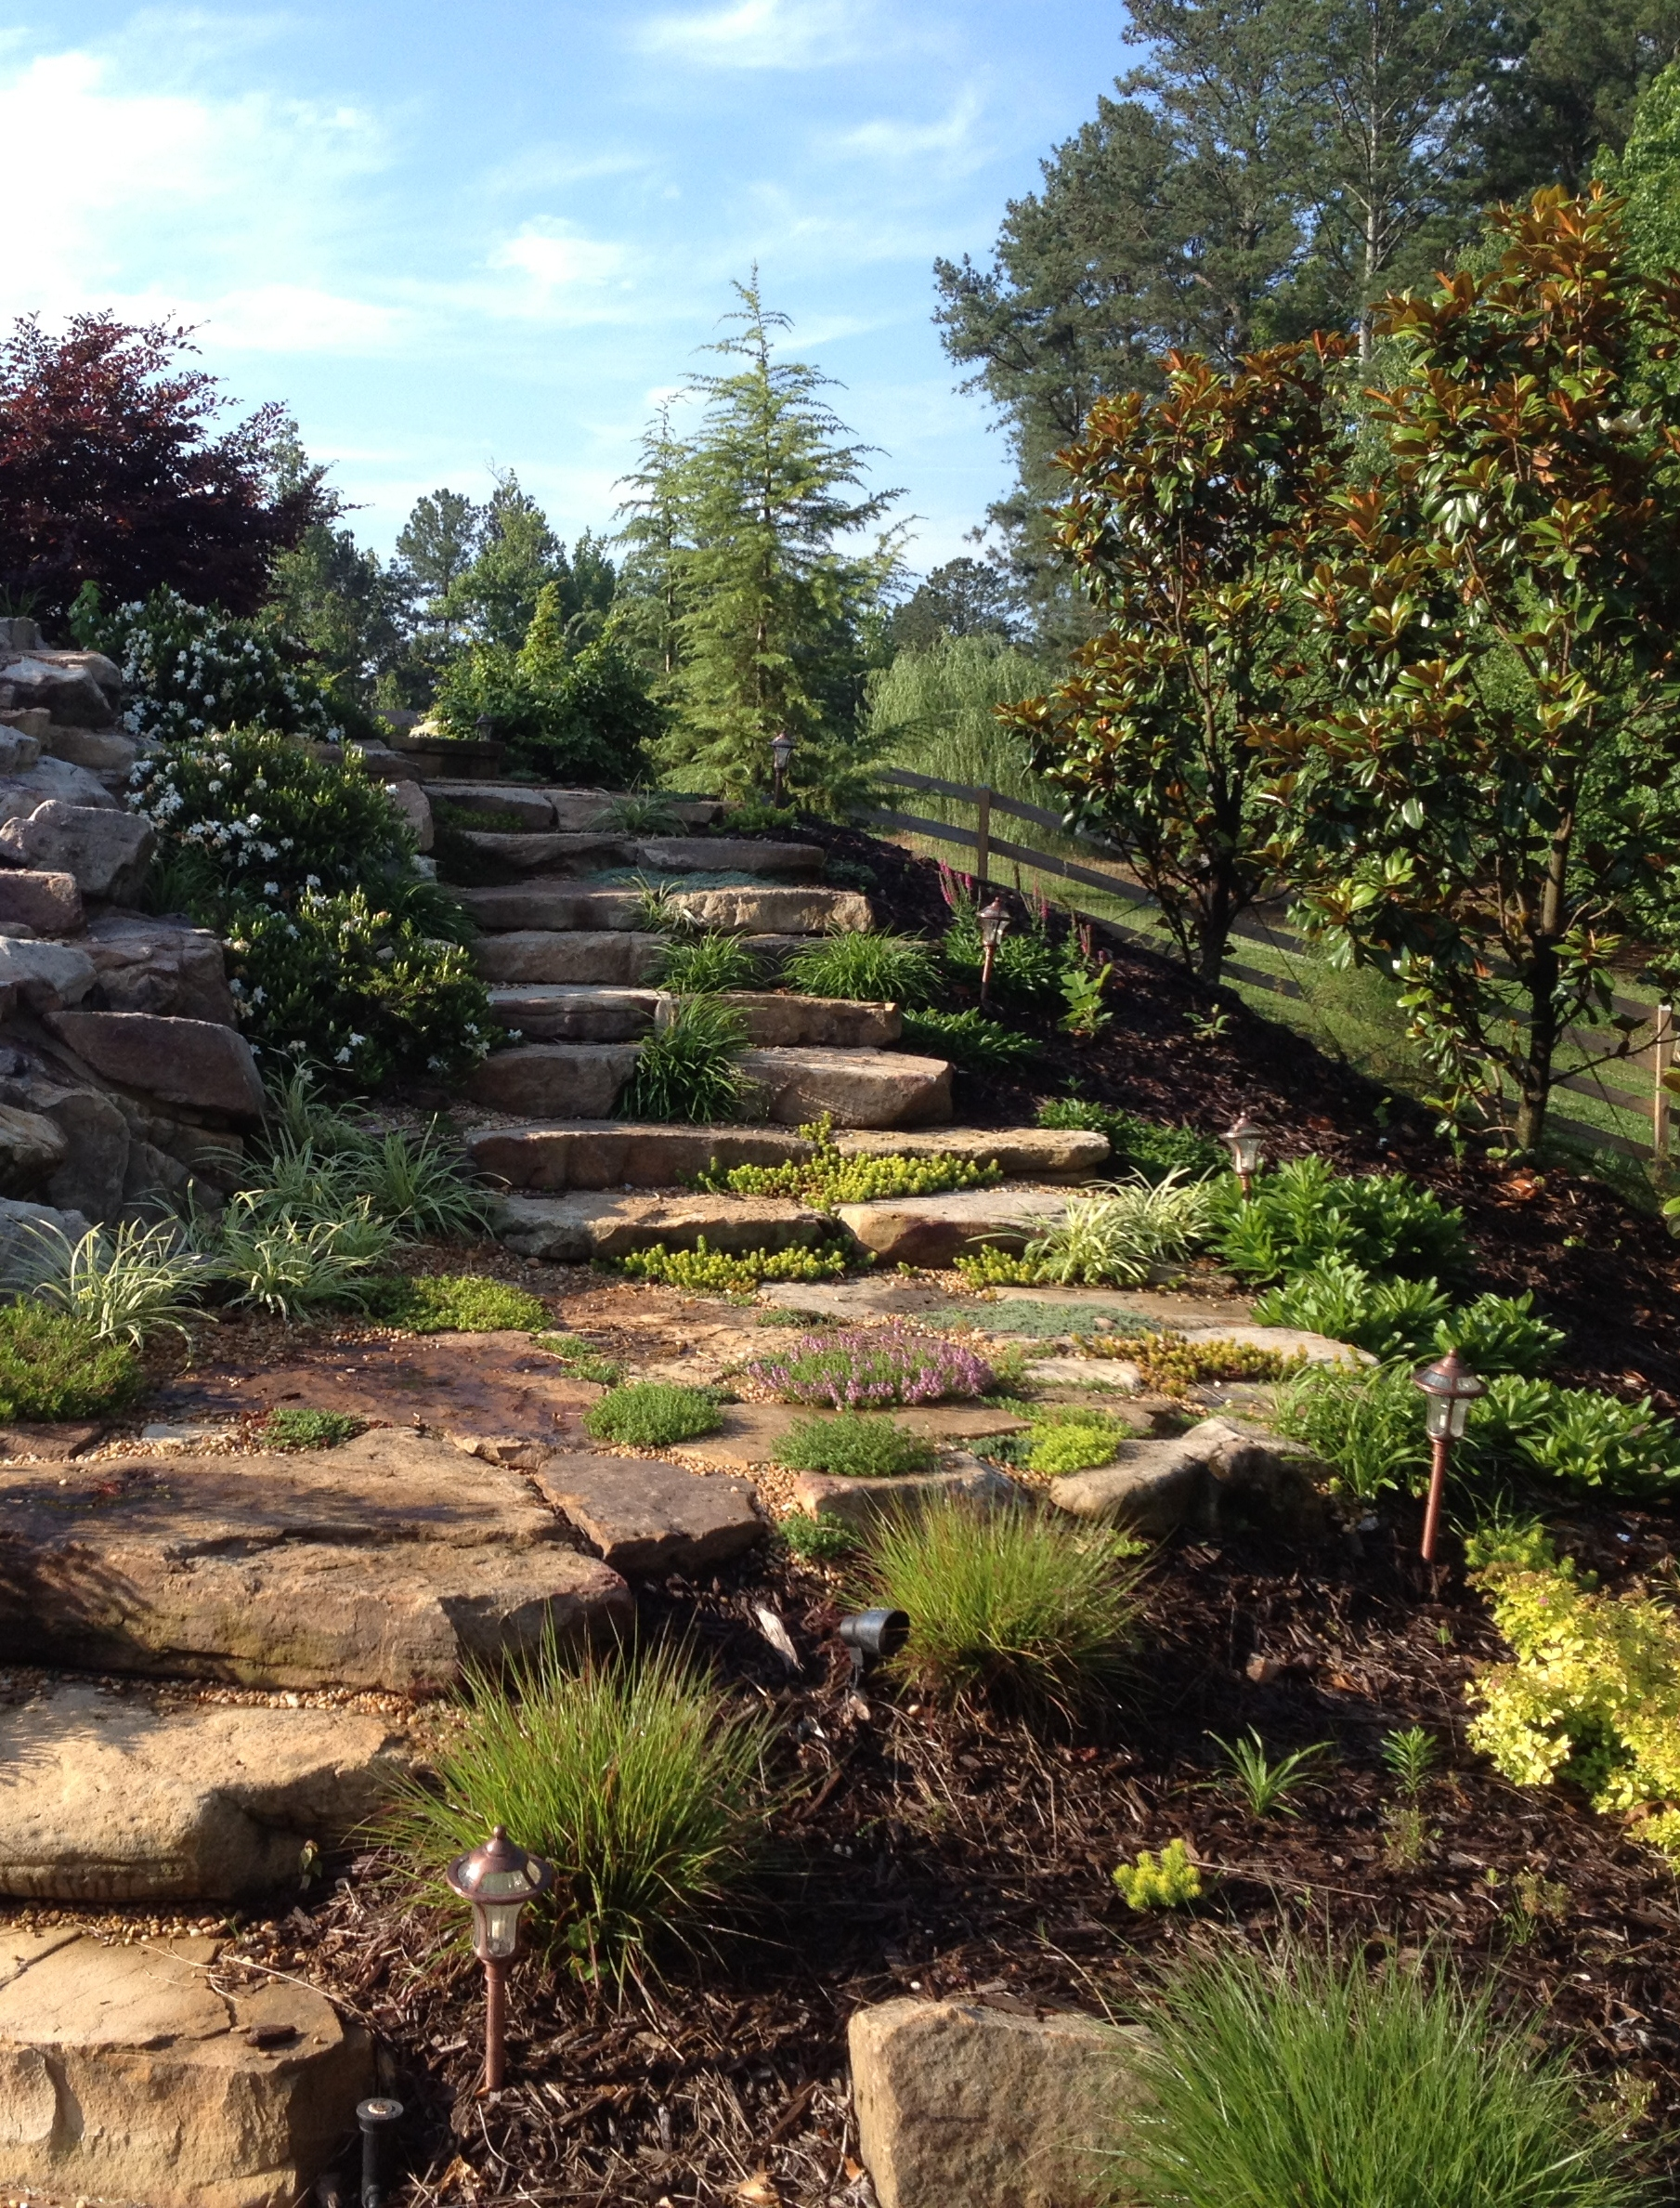 There is a Time to Plant, A Time to Sow – And a Time to Design!